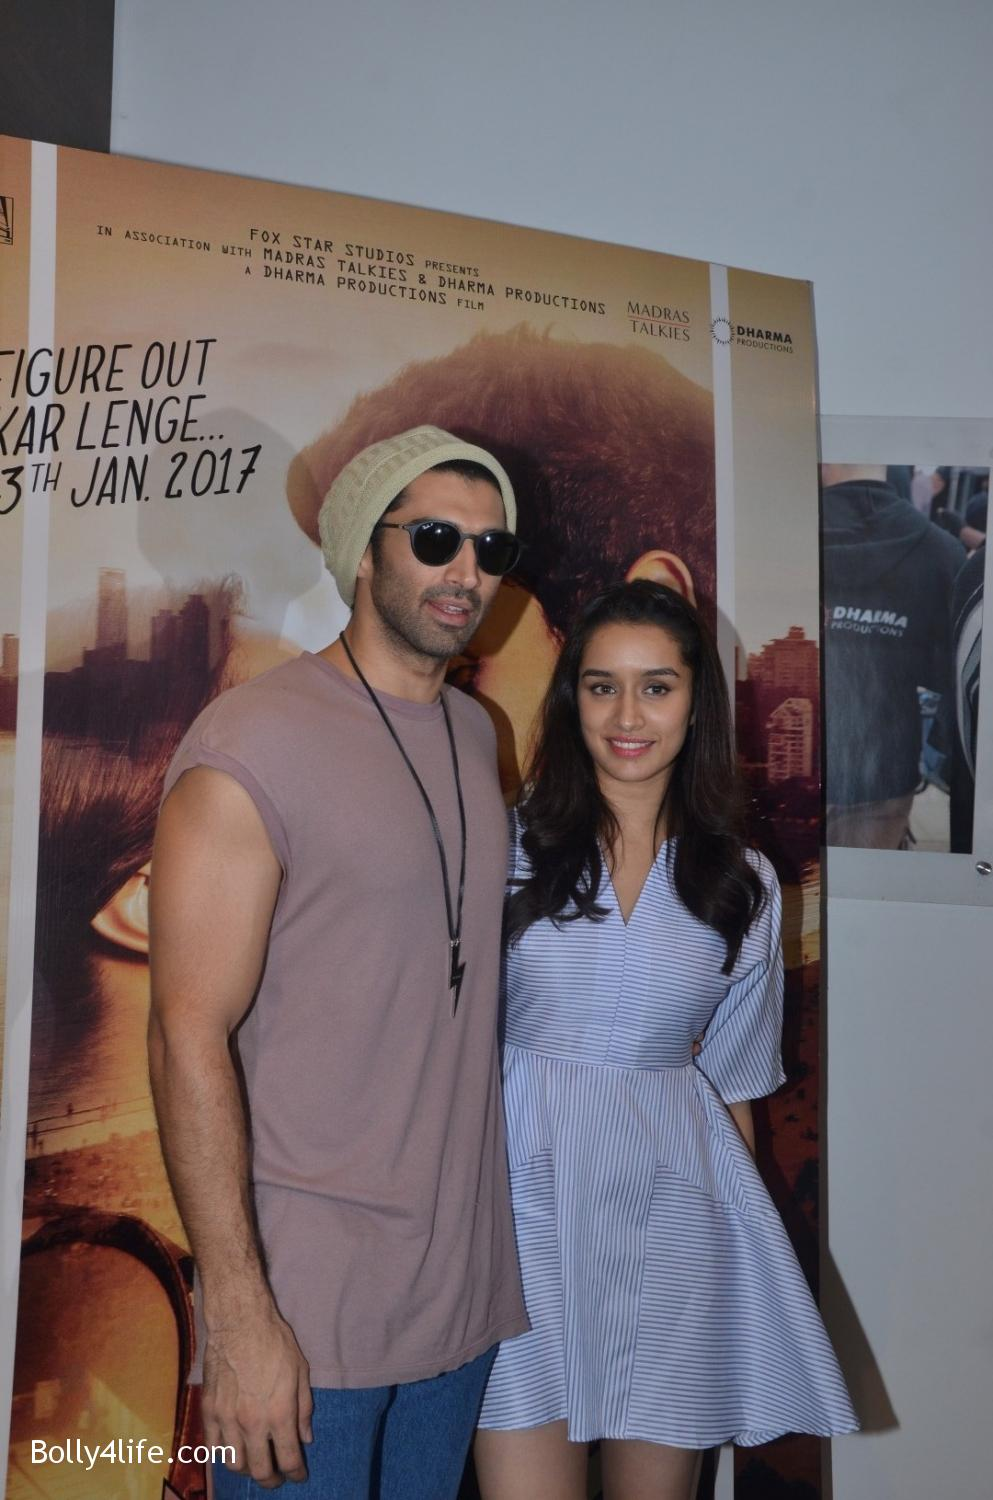 Aditya-Roy-Kapur-and-Shraddha-Kapoor-during-the-media-interaction-for-the-film-Ok-Jaanu-1.jpg